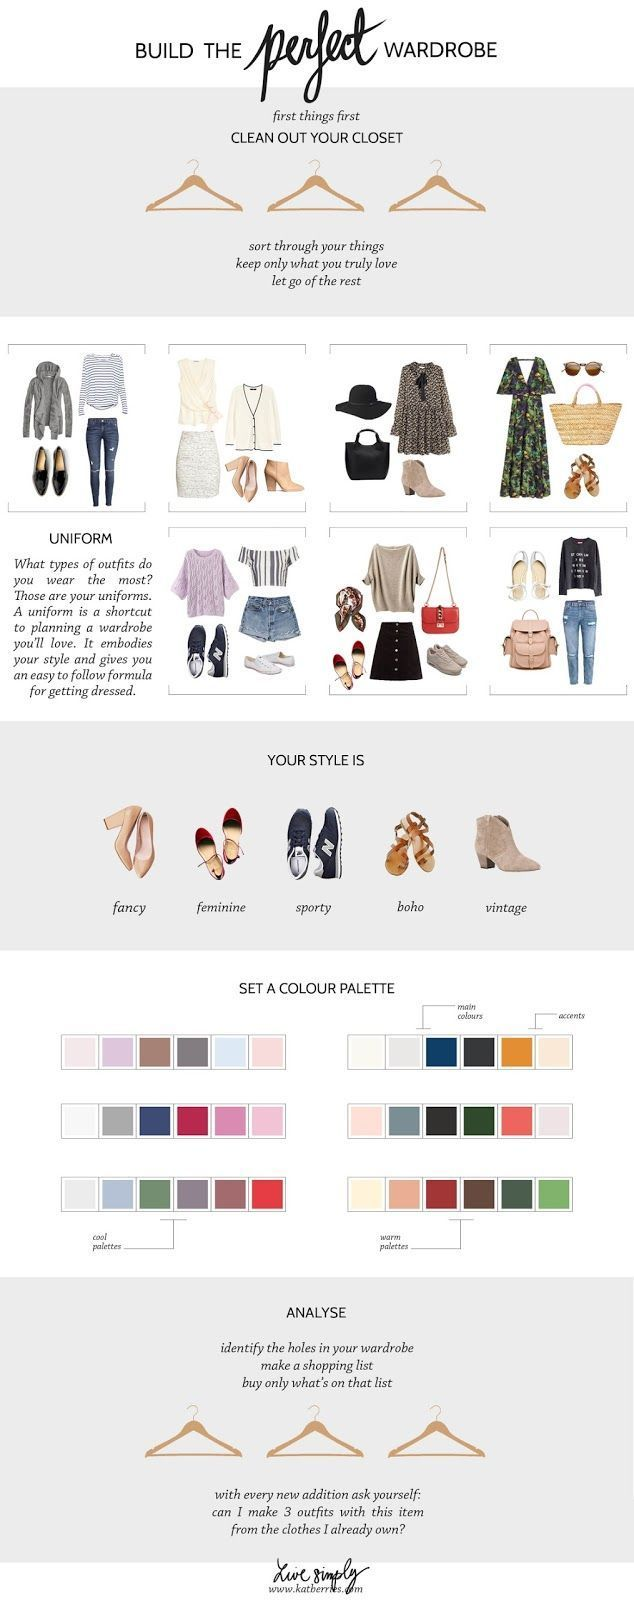 Katberries: HOW TO BUILD THE PERFECT (CAPSULE) WARDROBE My